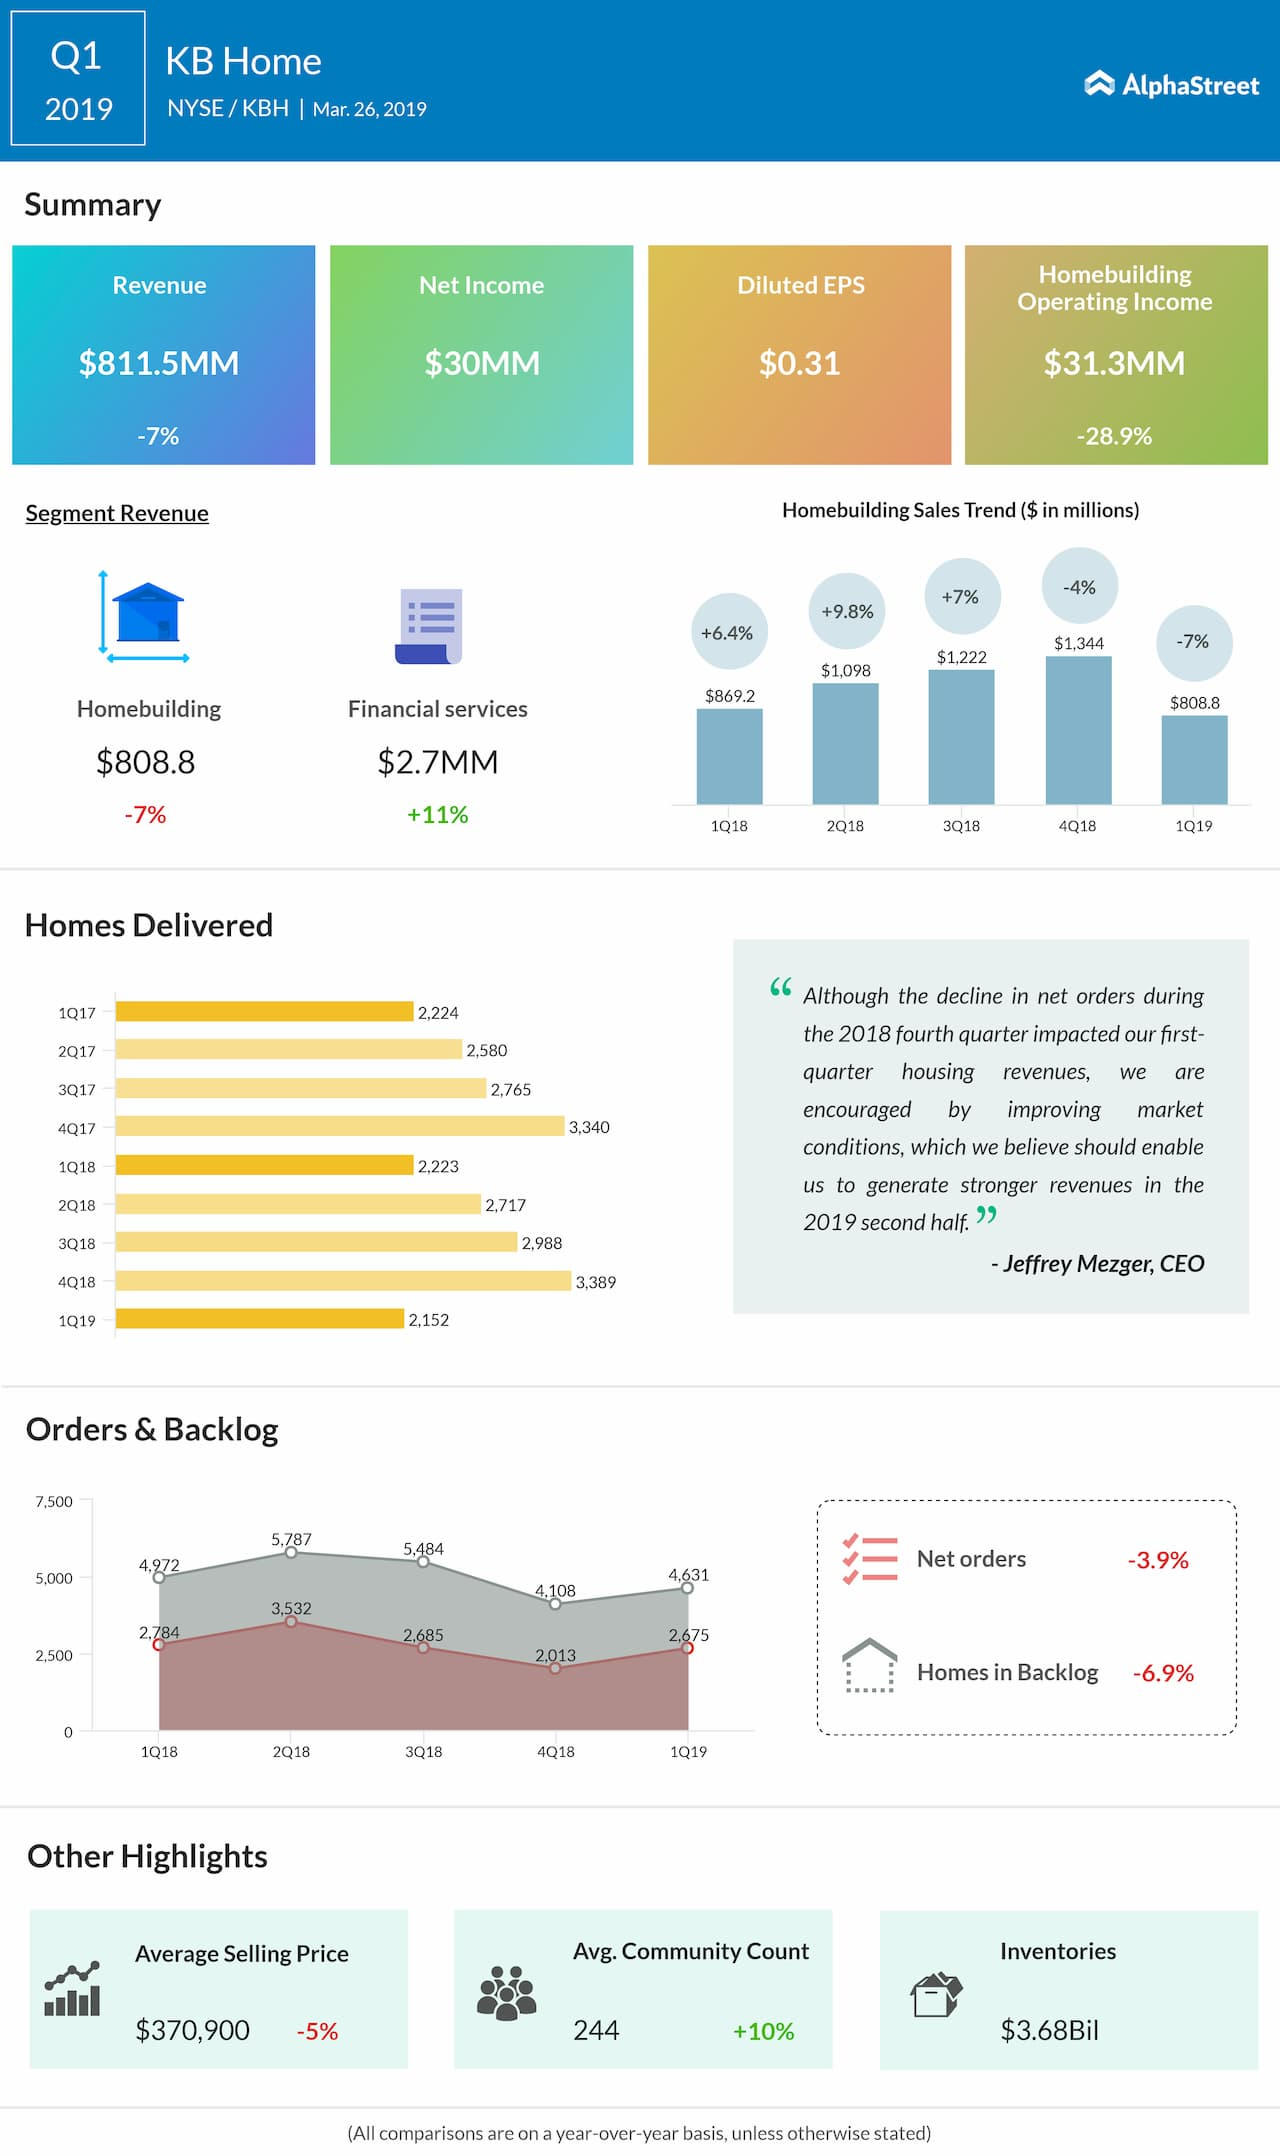 KB Home first quarter of 2019 earnings snapshot